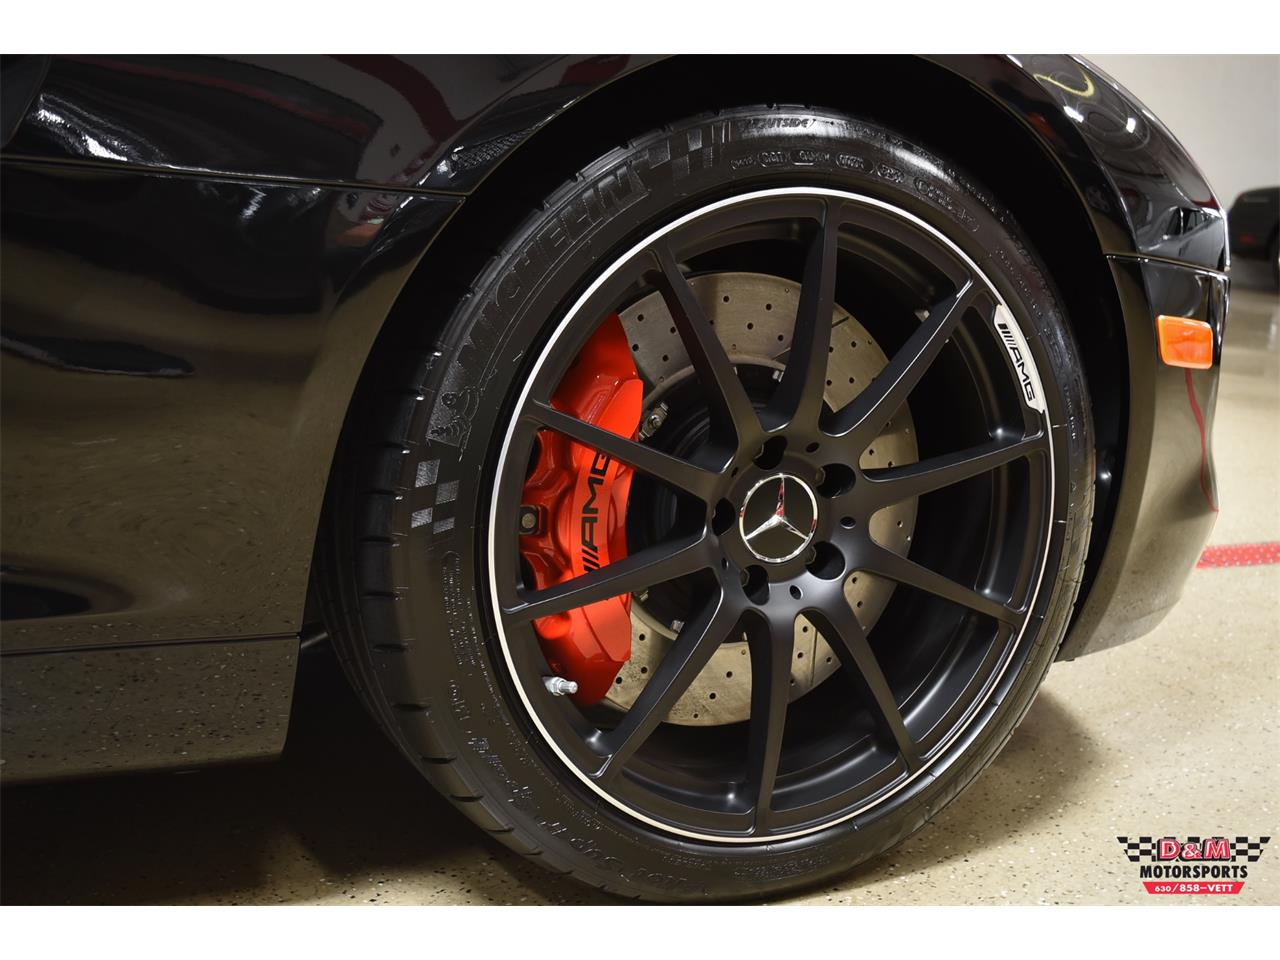 Large Picture of 2012 SLS AMG - $199,995.00 Offered by D & M Motorsports - PXCB